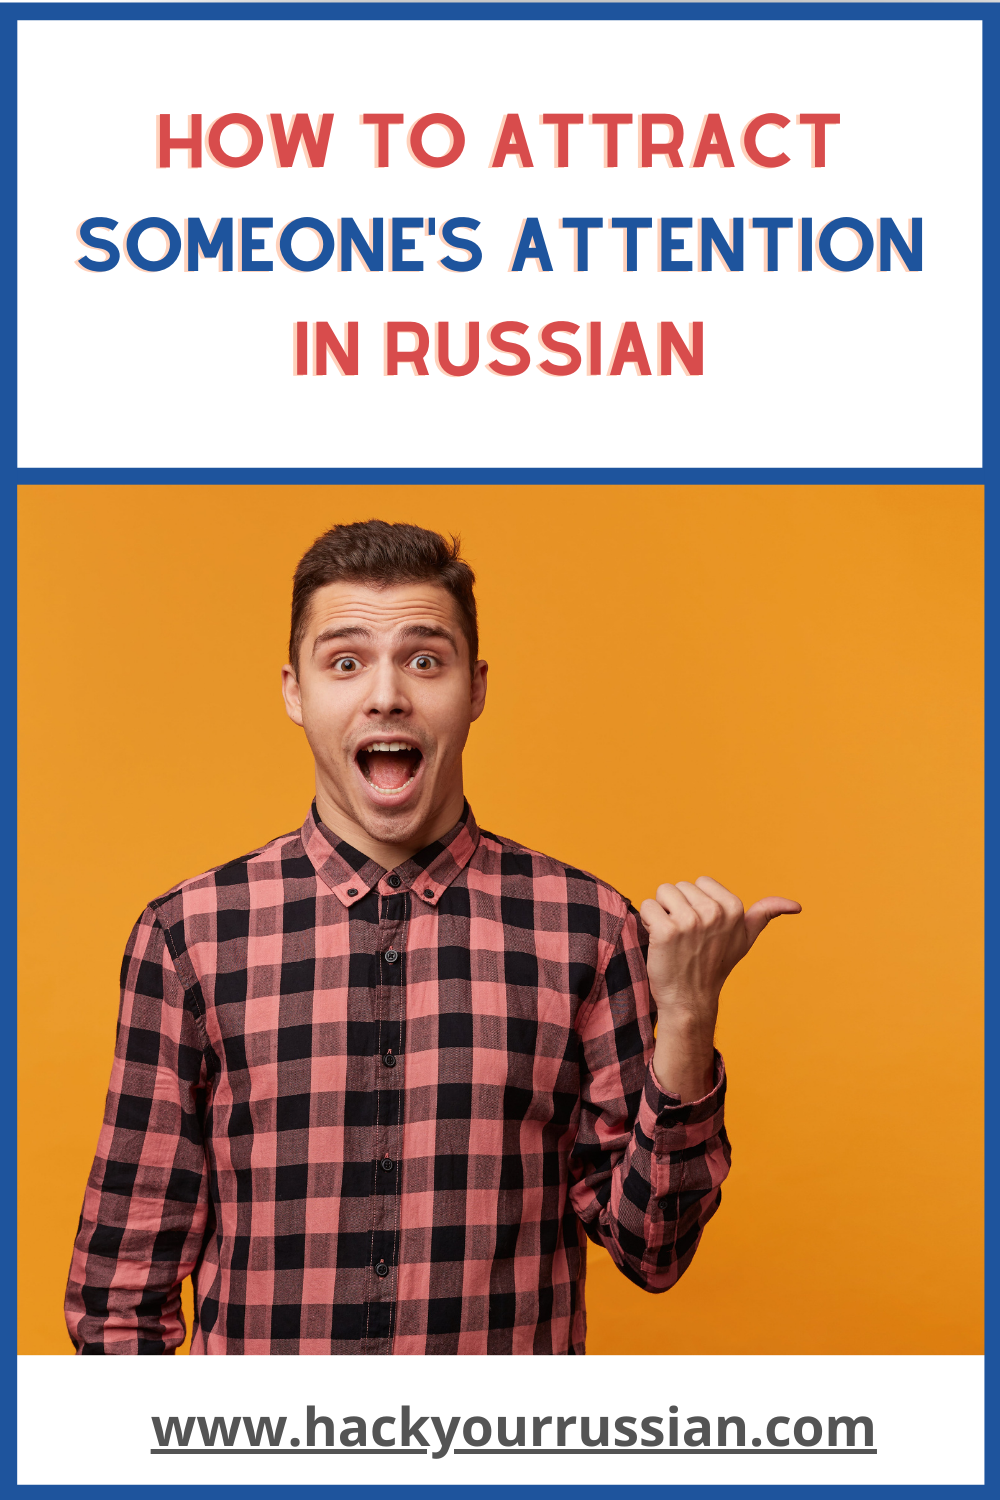 Main Russian phrases to attract someone's attention